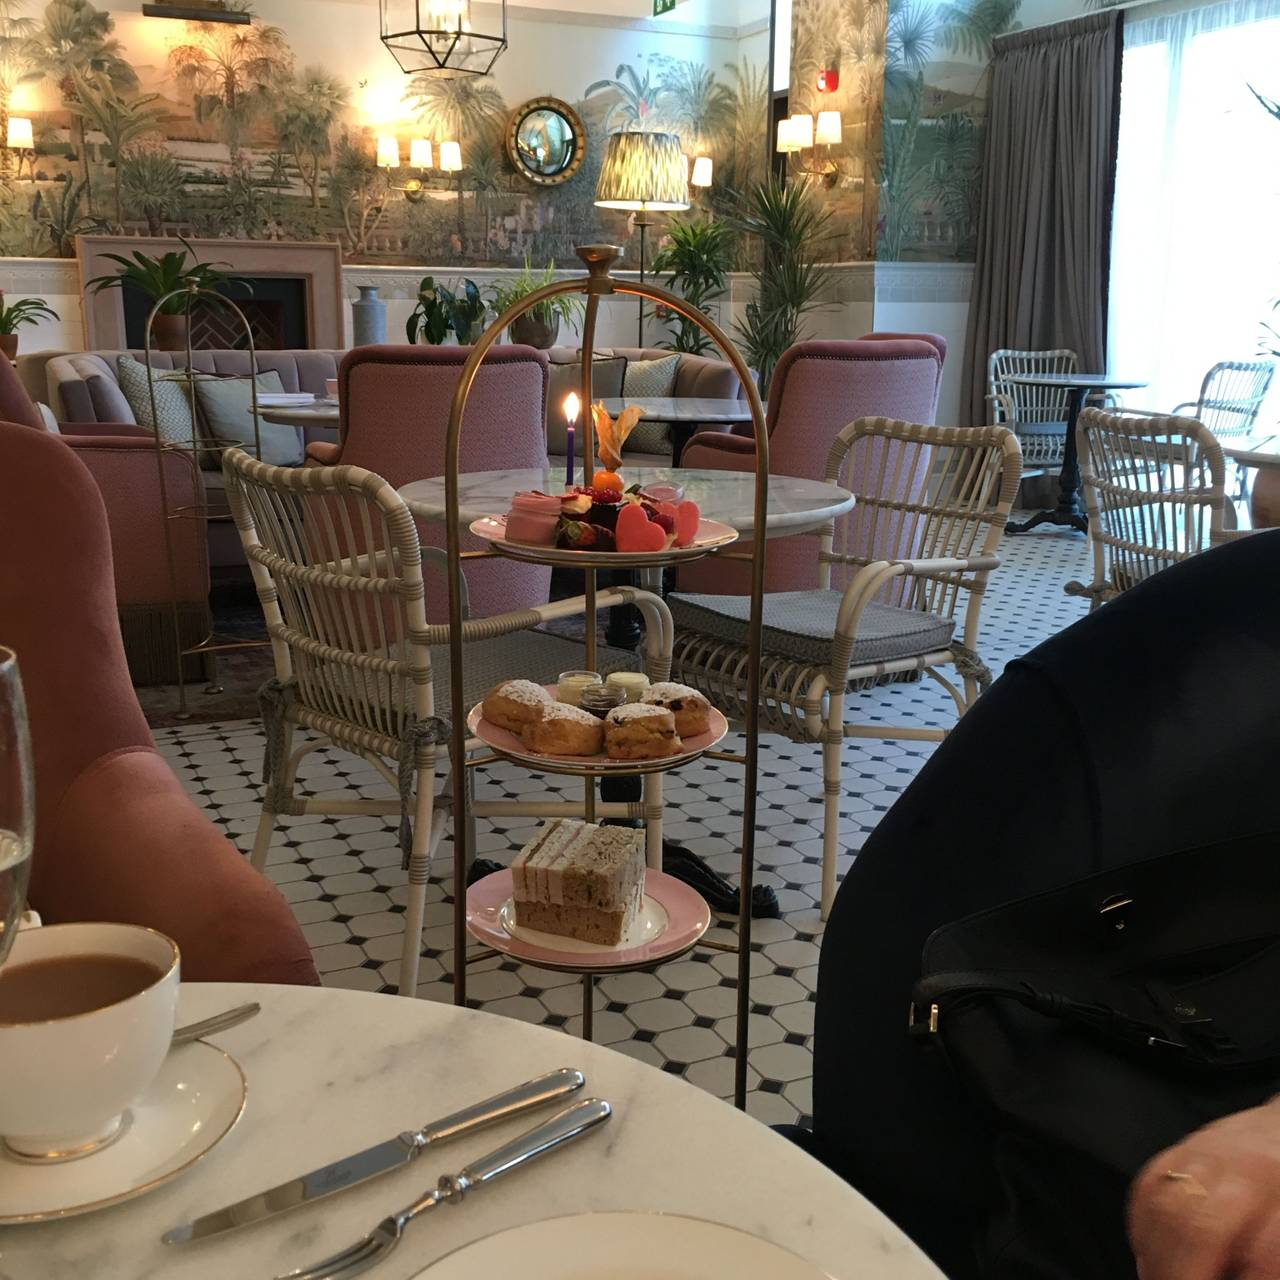 Afternoon Tea Lounge At The Tamburlaine Hotel Cambridge Cambridgeshire Opentable